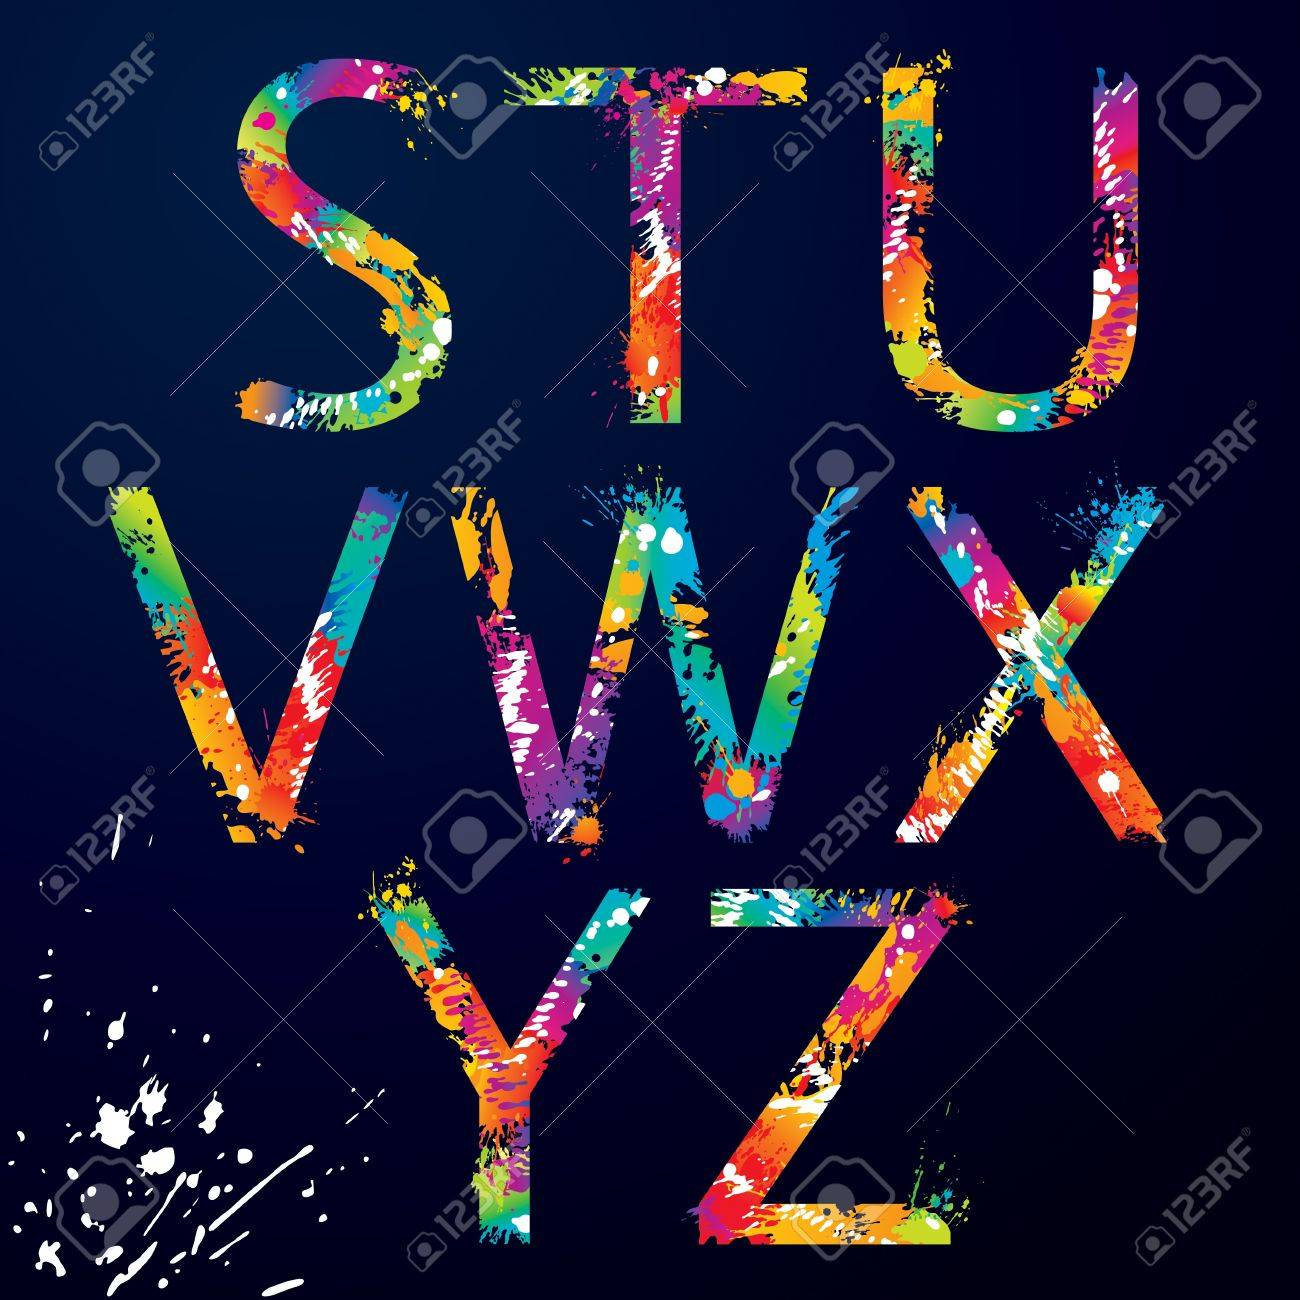 Font - Colorful letters with drops and splashes from S to Z  illustration Stock Vector - 16062096